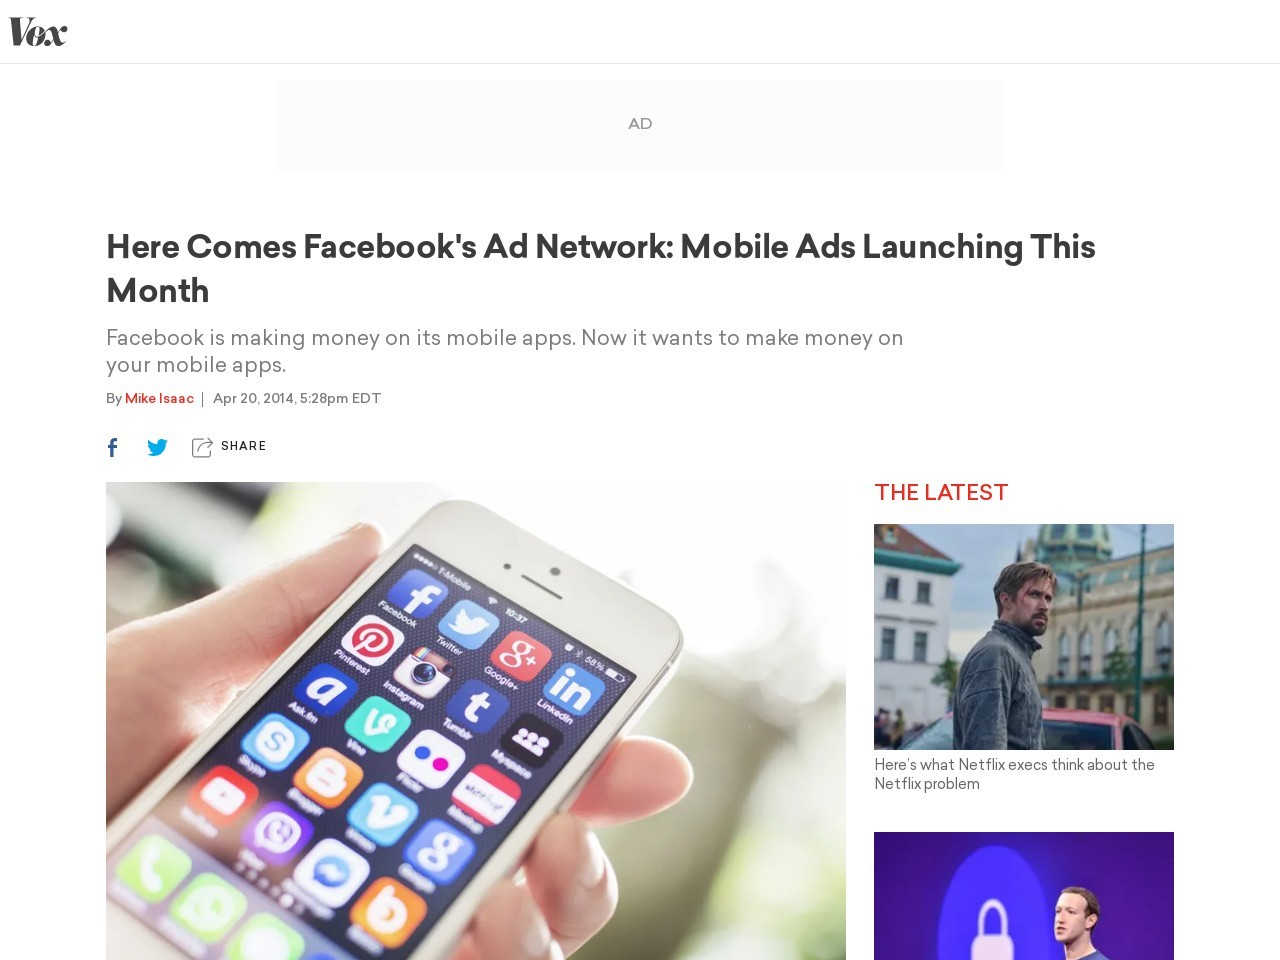 Here Comes Facebook's Ad Network: Mobile Ads Launching This Month